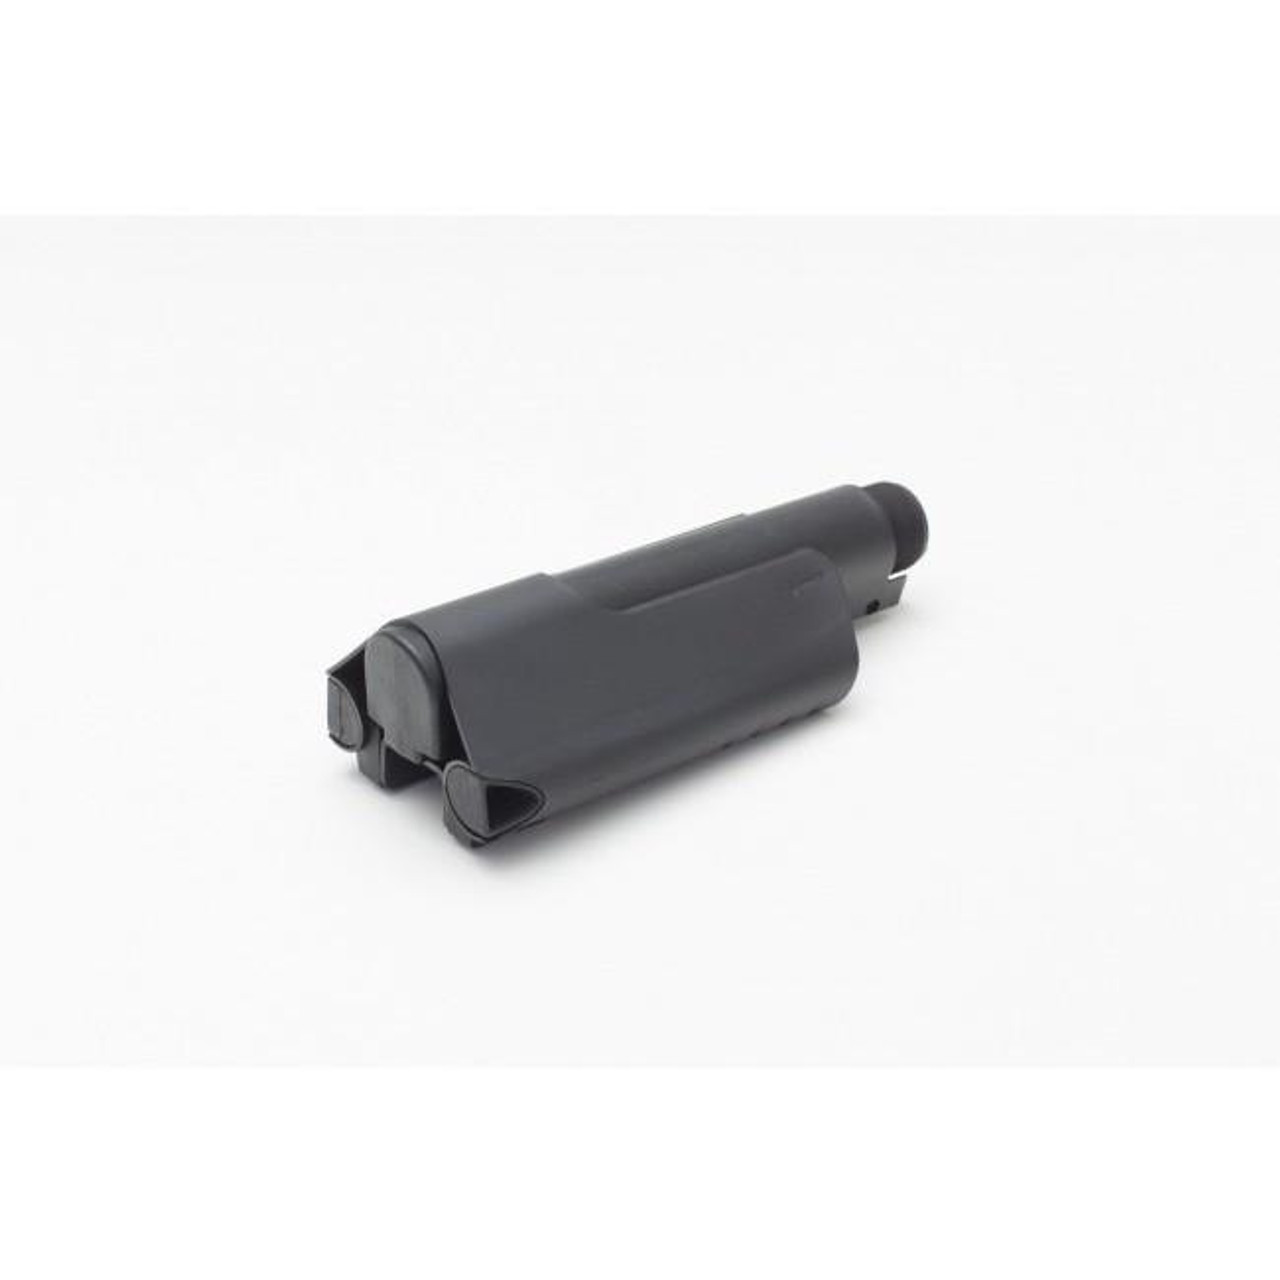 Thordsen Custom AR/AK Enhanced Pistol Cheek Rest Kit with MFT Saddle - Keyed BUffer Tube 7.60""